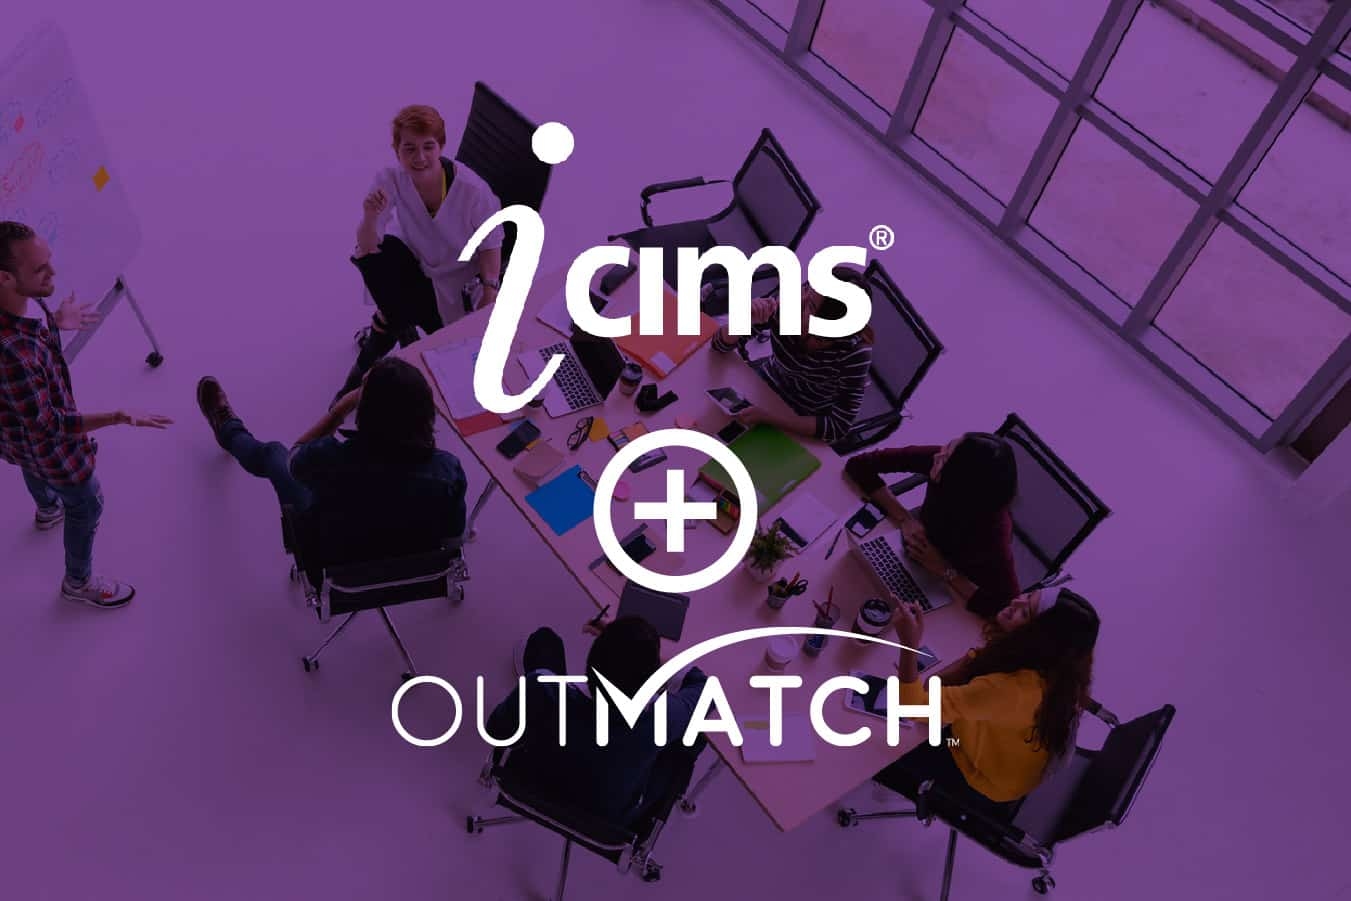 OutMatch Partners With ICIMS To Elevate The Recruiter Experience Through Prime Assessments Integration